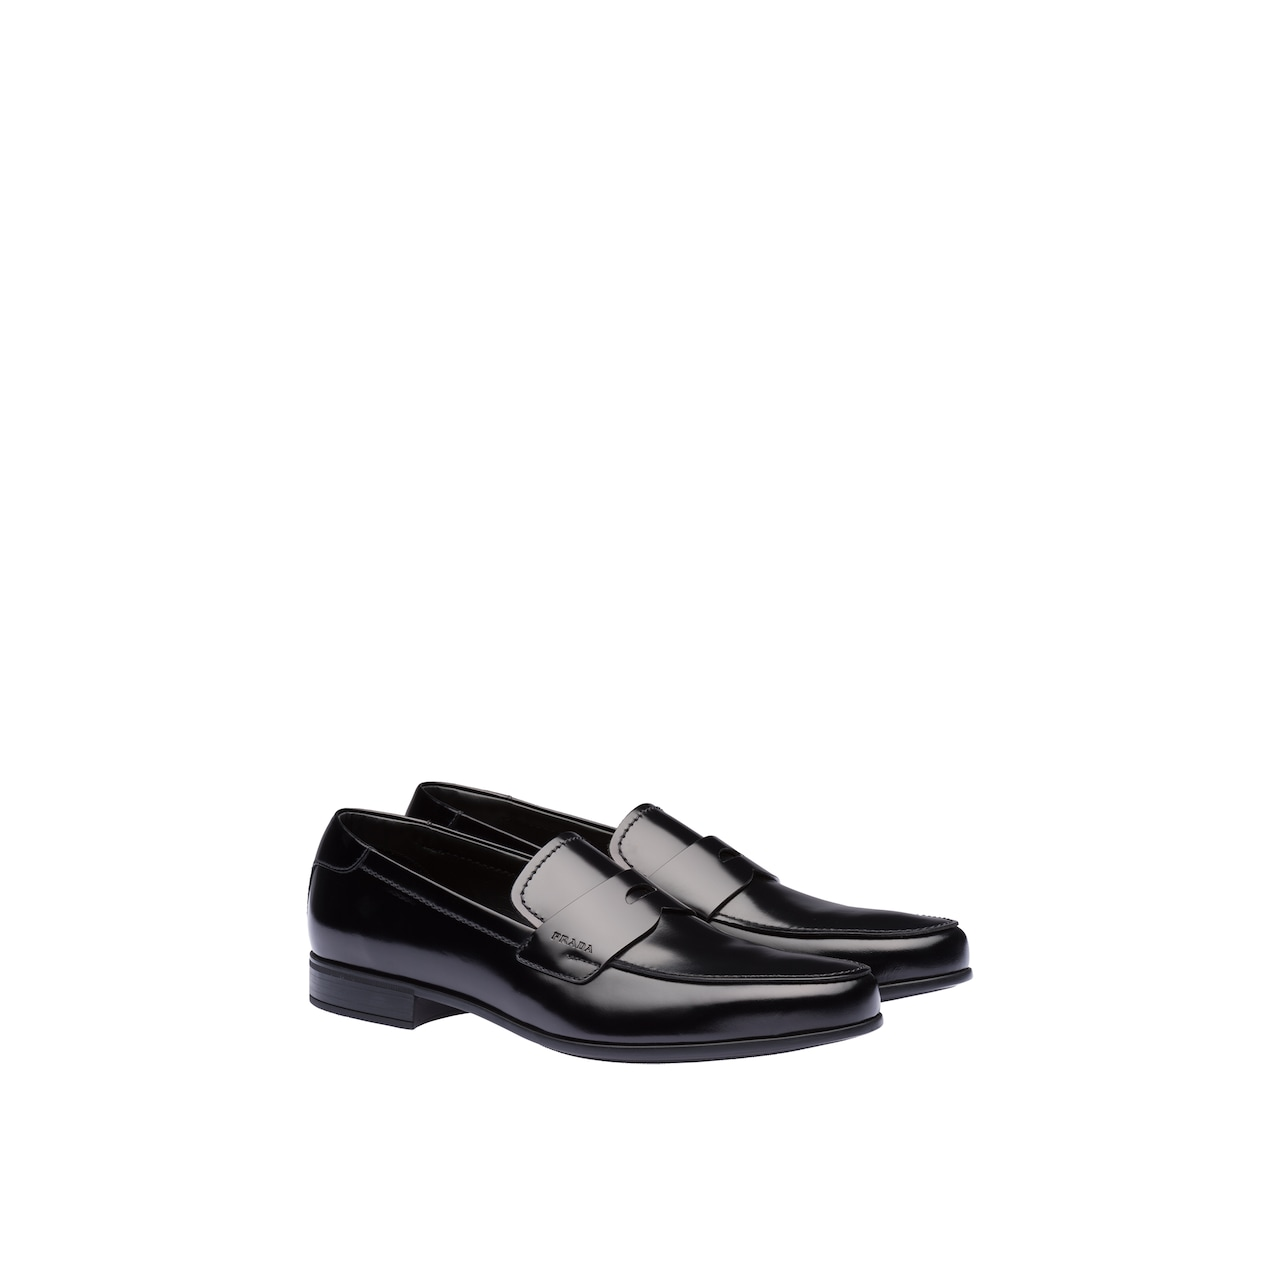 Prada Brushed leather loafers 2